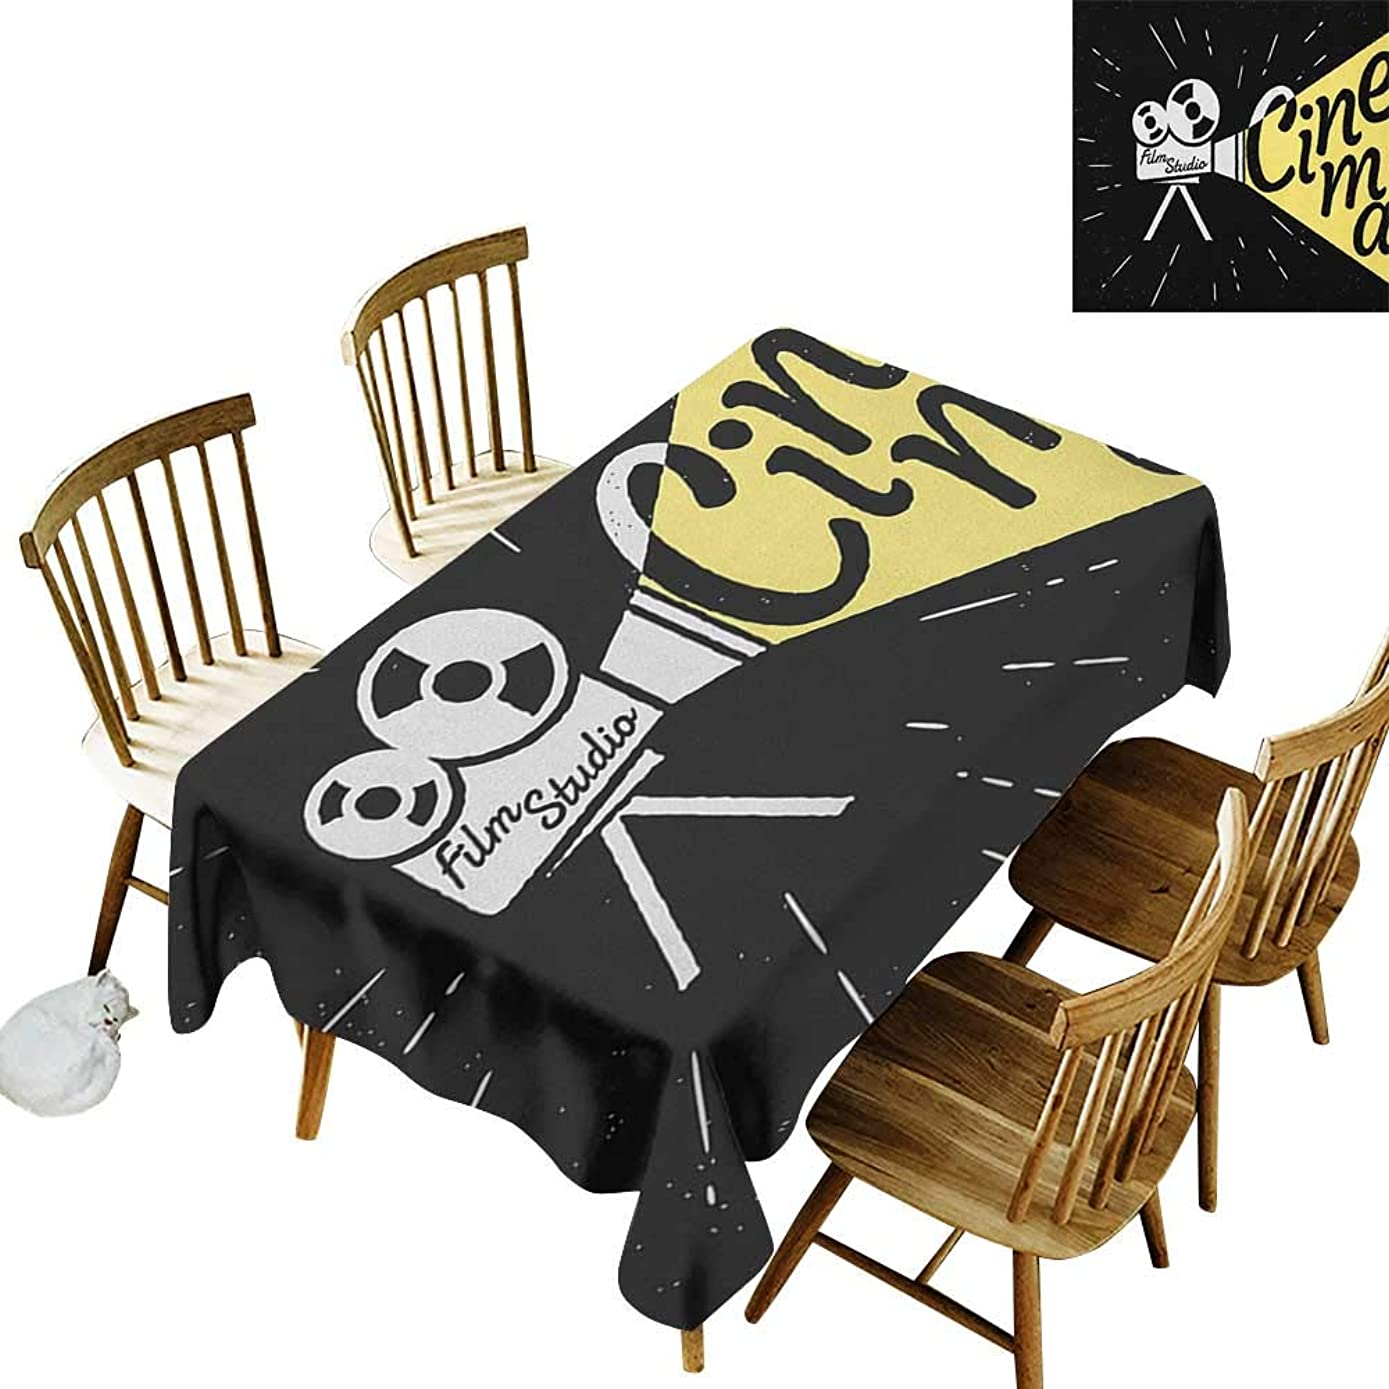 Camping Outdoor Tablecloth W50 x L80 Movie Theater Movie Projector Sketch with Grunge Cinema Lettering on Black Backdrop Yellow Black White Suitable for Traveling Outdoors Family Restaurant Coffee s